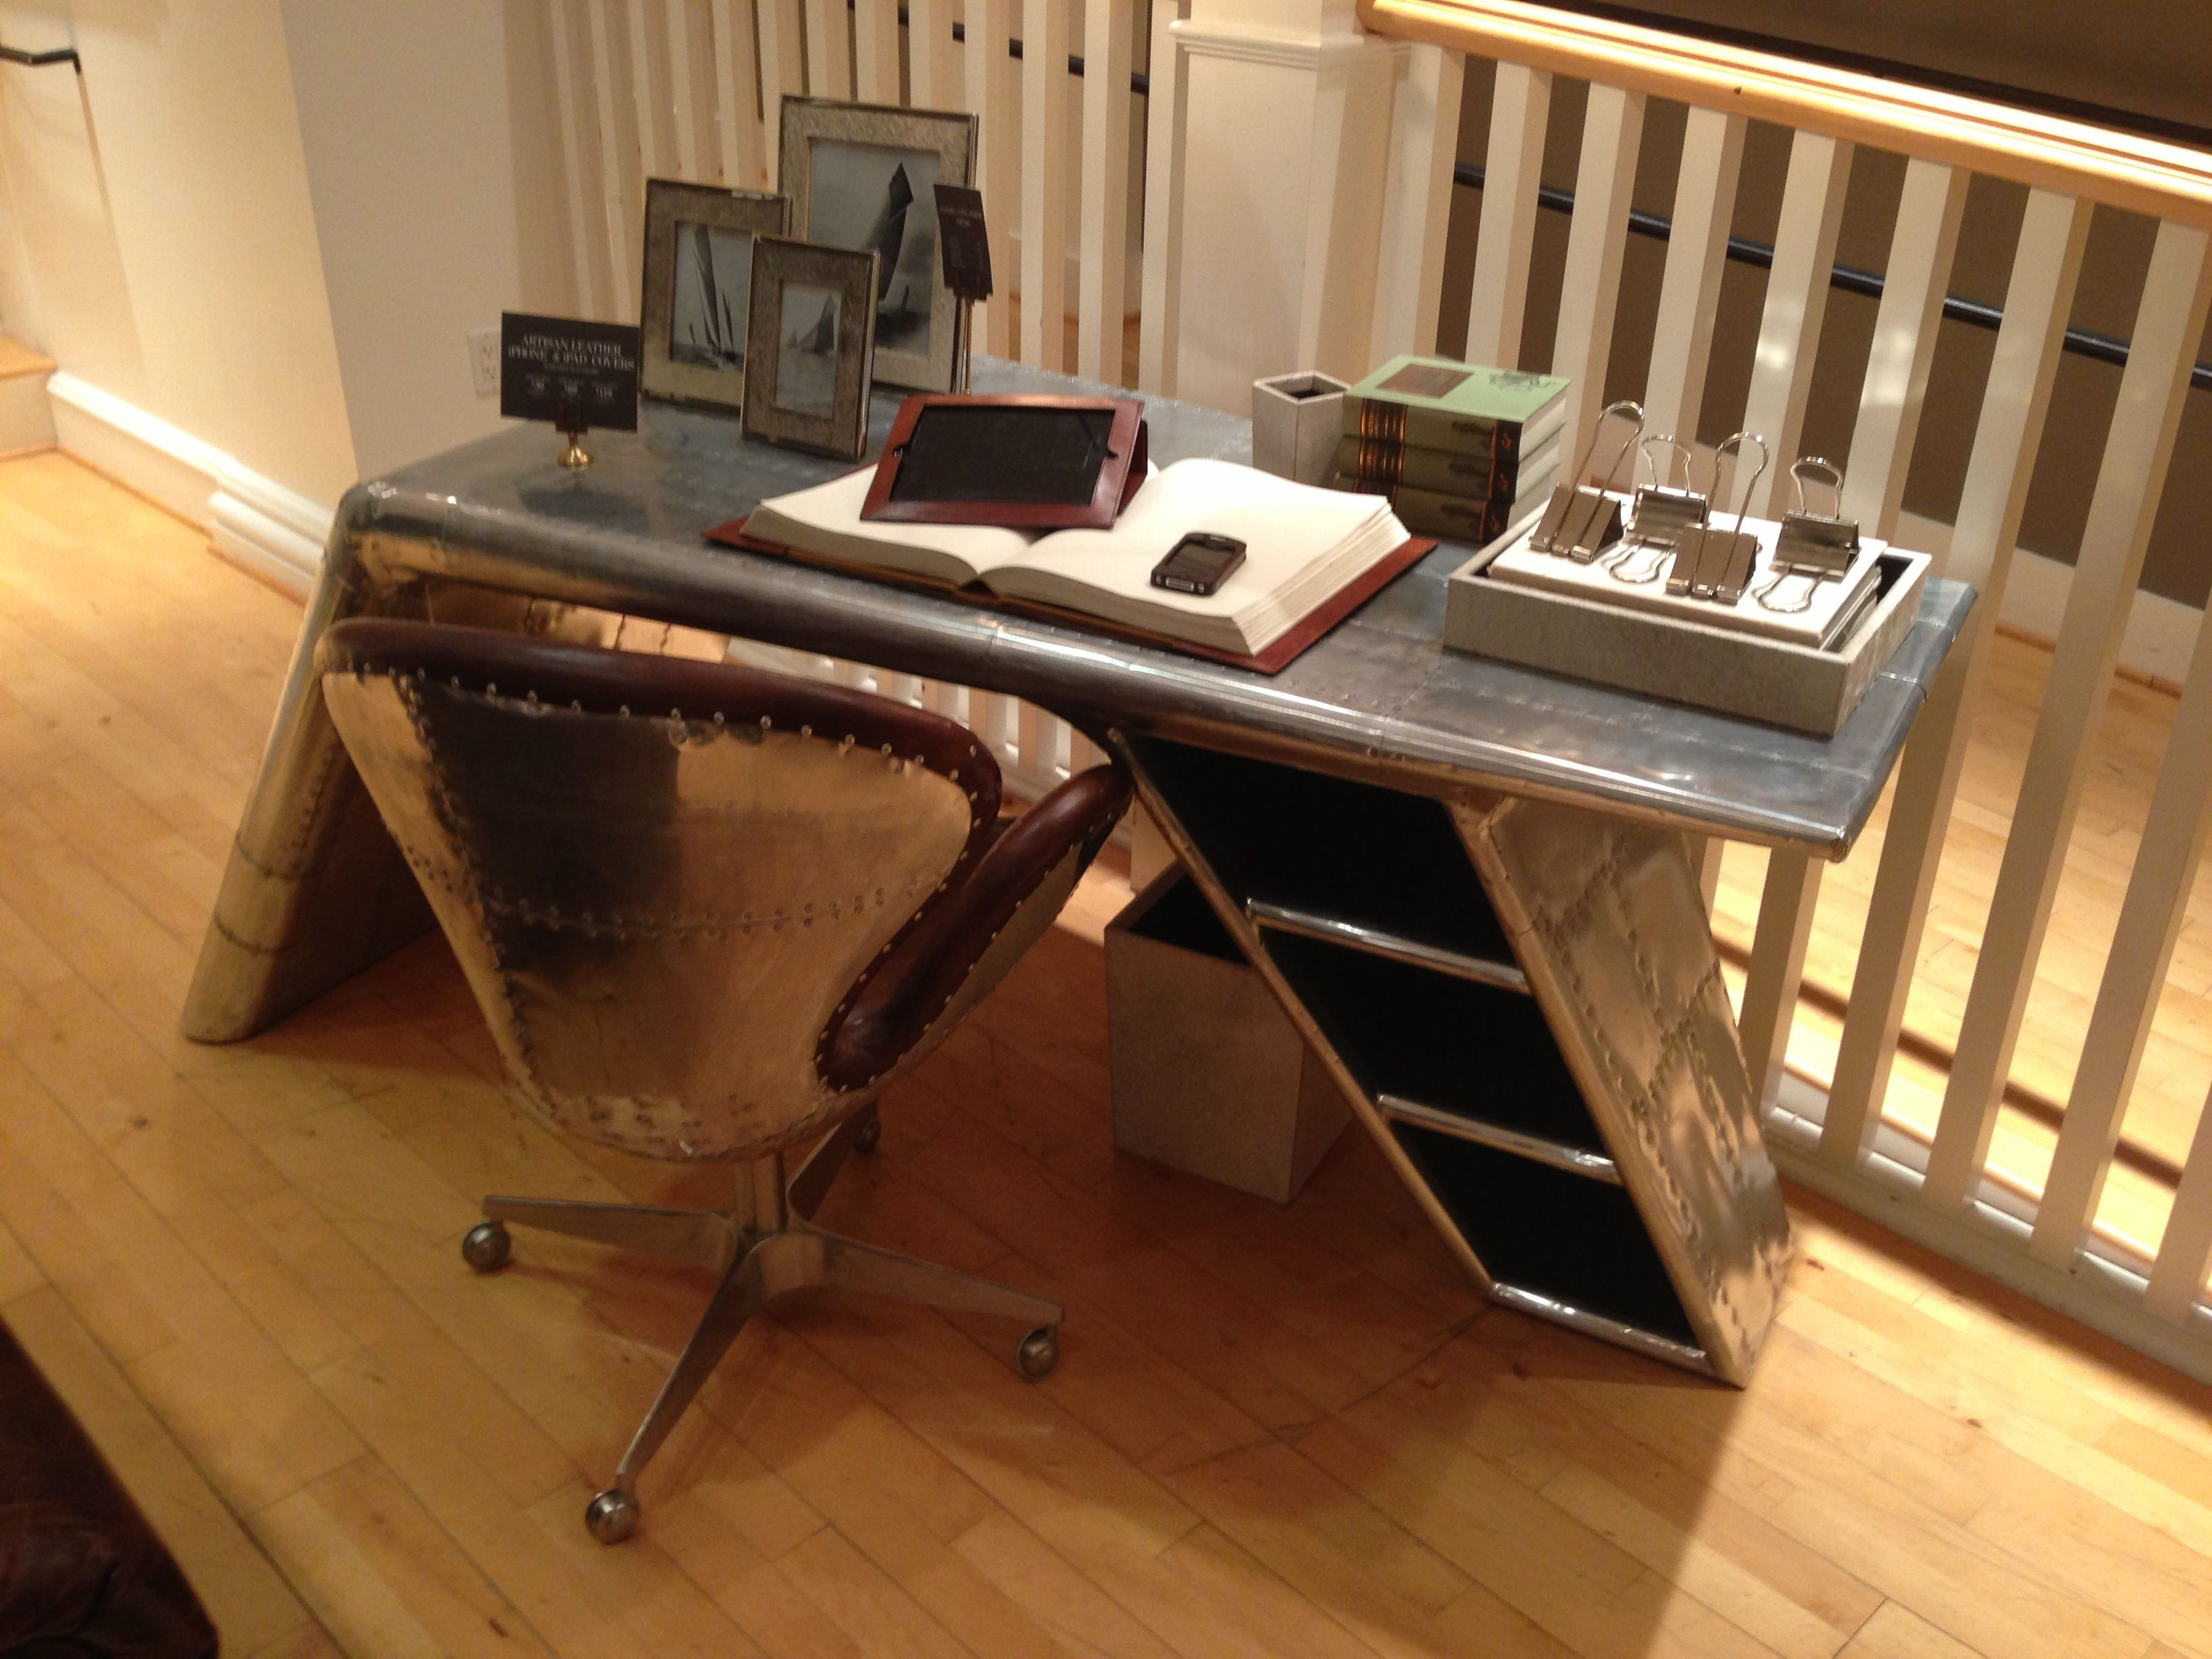 restoration hardware aviator chair used swivel in bangladesh desk offices and craft rooms